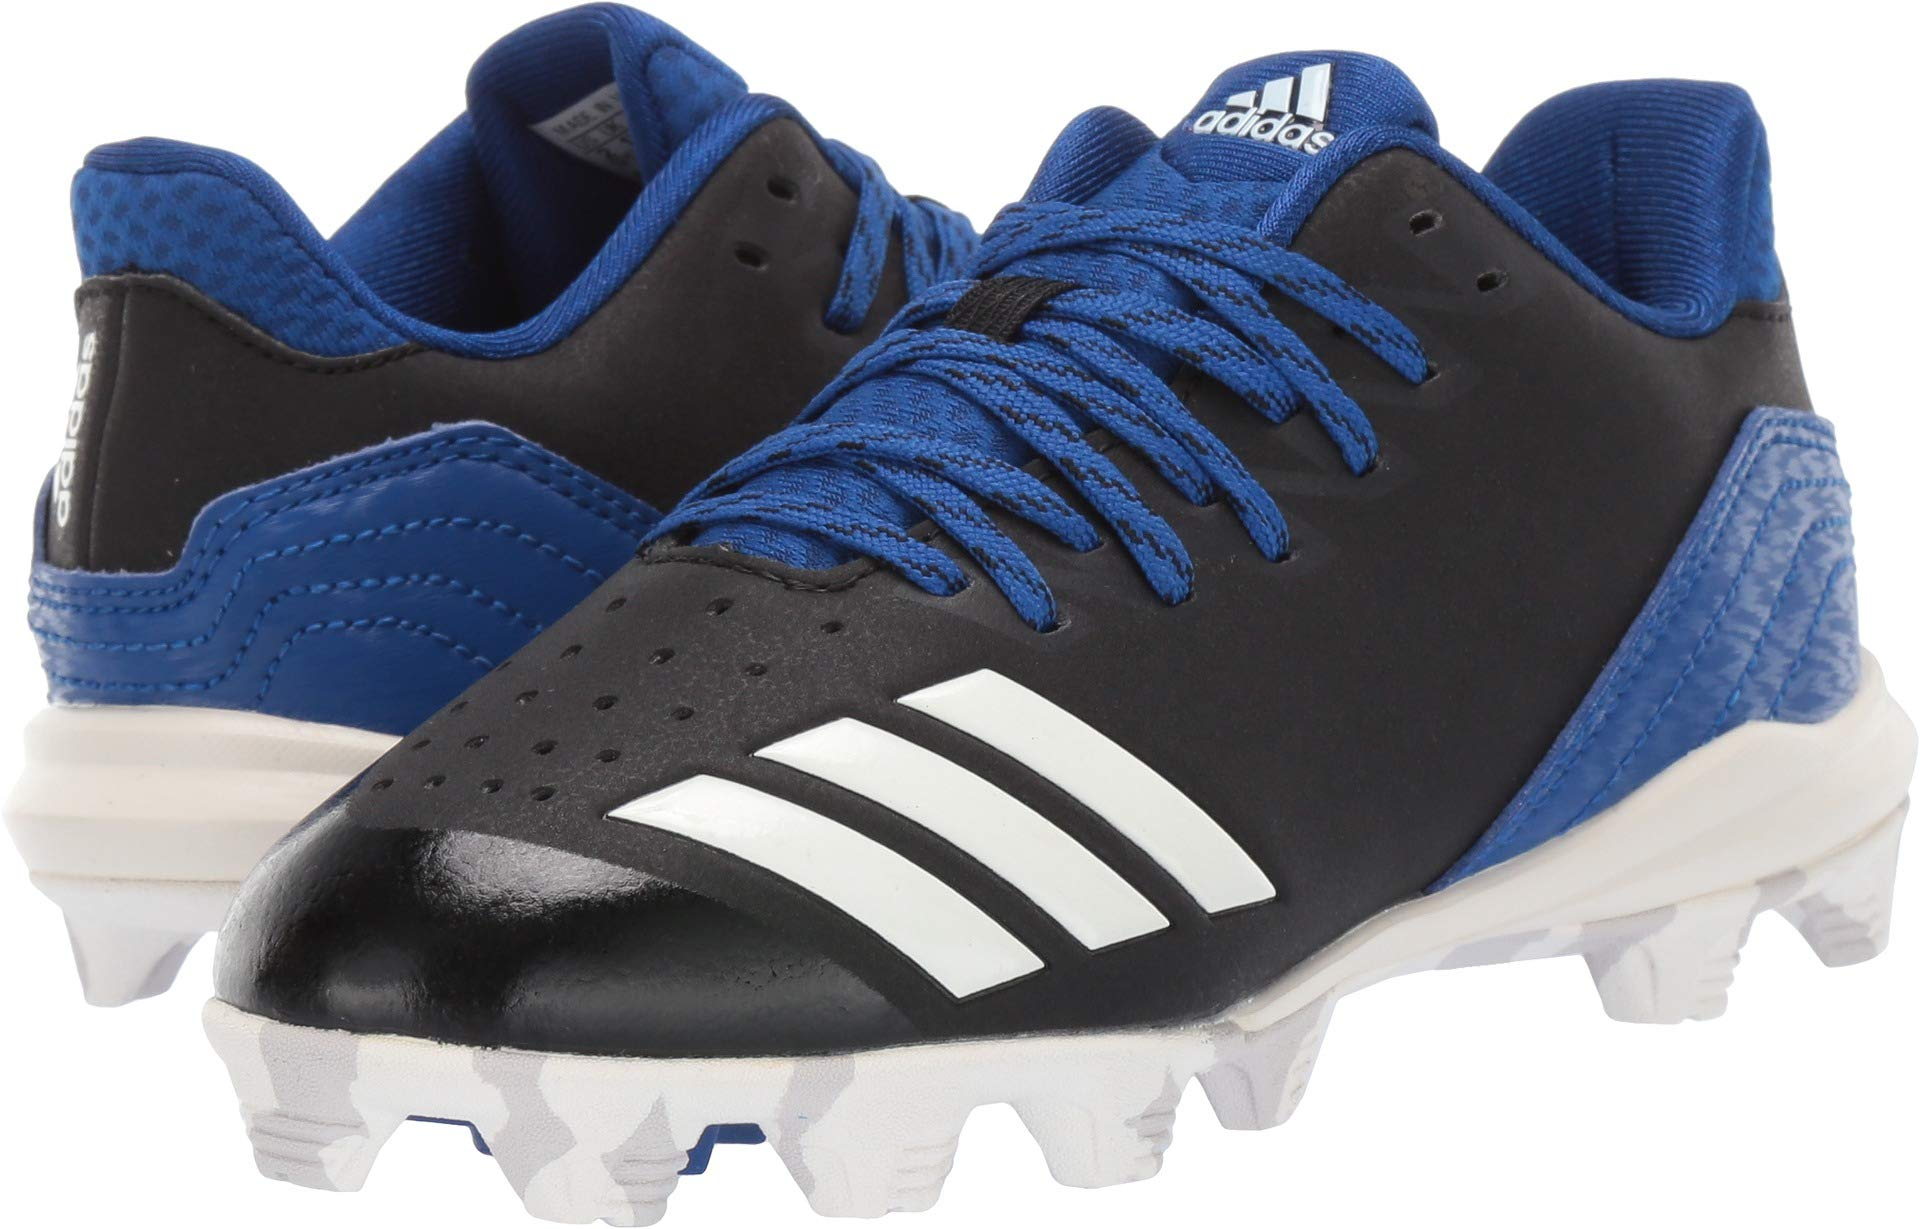 adidas Unisex Icon 4, Black/Cloud White/Collegiate Royal, 2 M US Little Kid by adidas